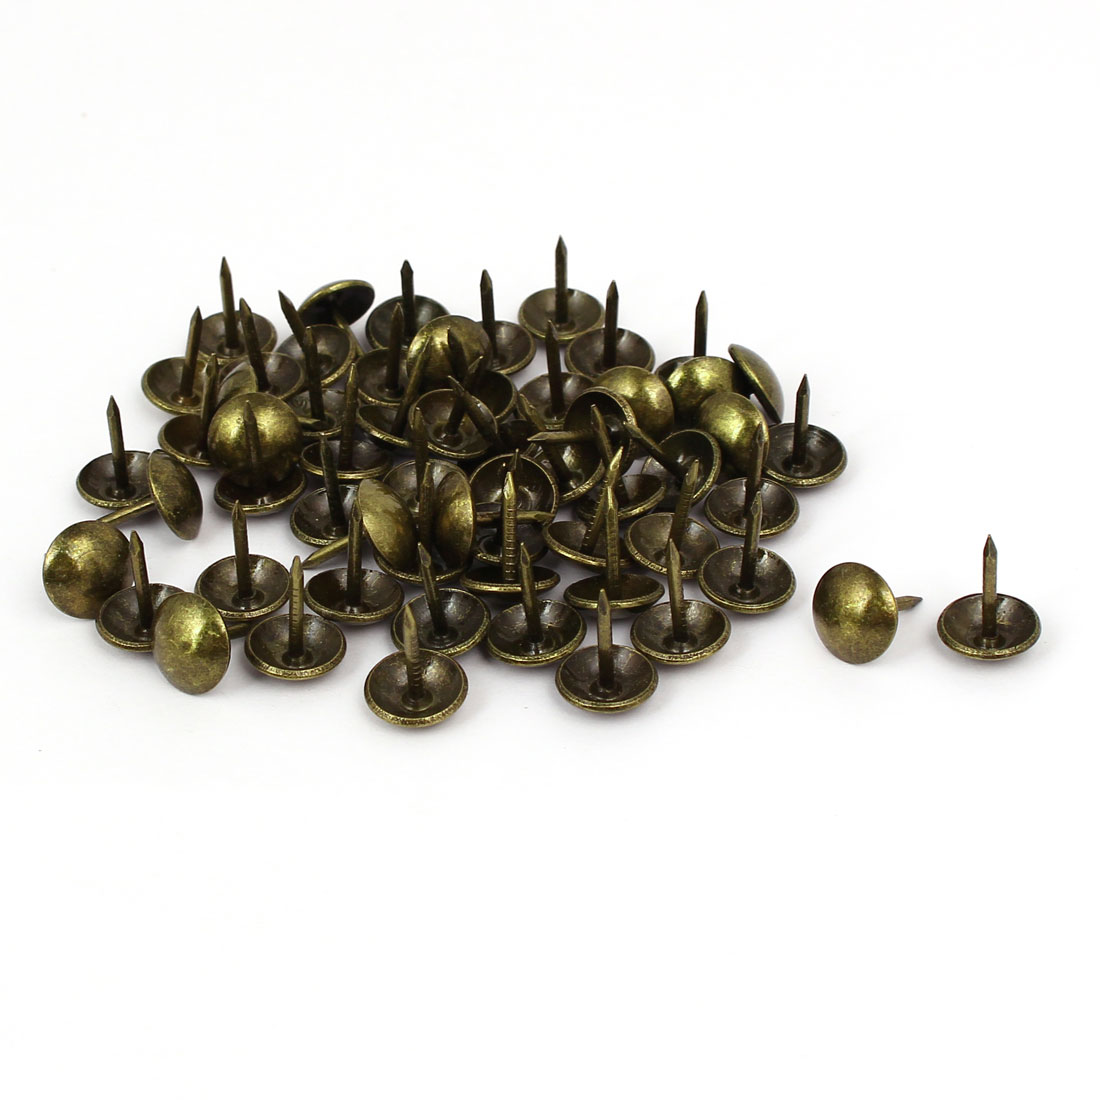 Leather Sofa Round Head Upholstery Tack Nail Bronze Tone 10mm x 13mm 60pcs